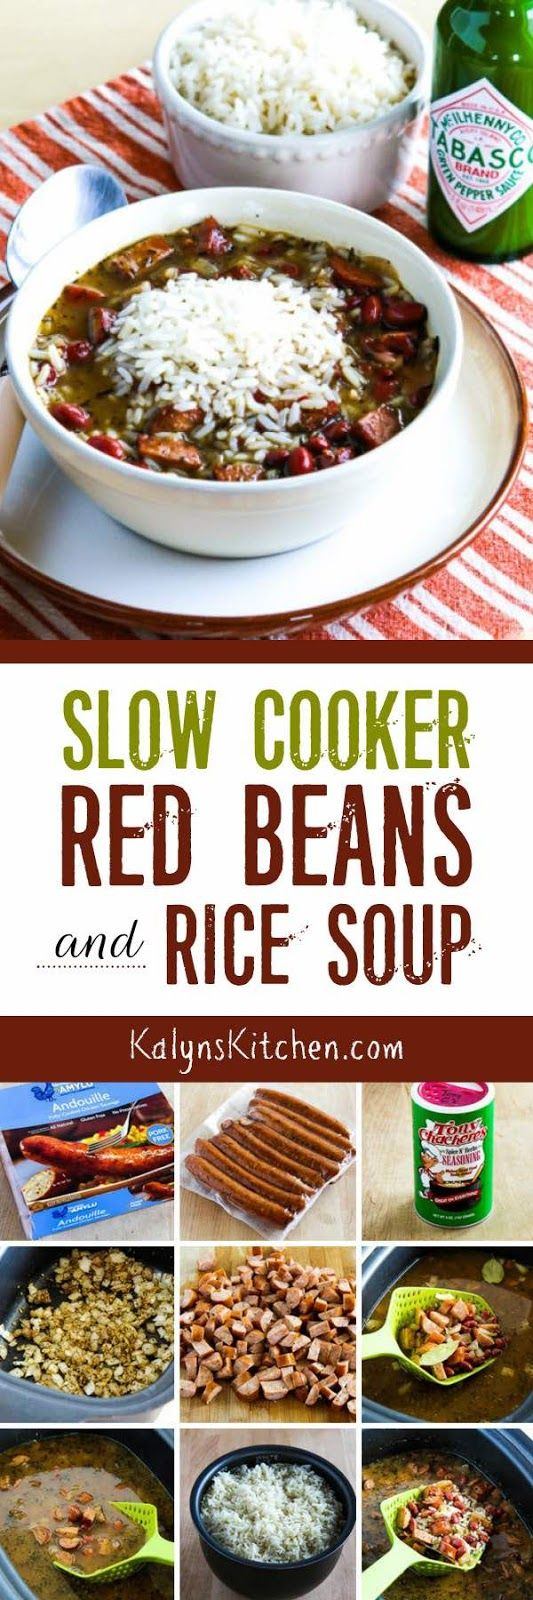 All the flavors you love in New Orleans Red Beans and Rice are in this Slow Cooker Red Beans and Rice Soup, made with delicious gluten-free chicken Andouille sausage. The soup is also dairy-free and South Beach Diet friendly. [found on KalynsKitchen.com]